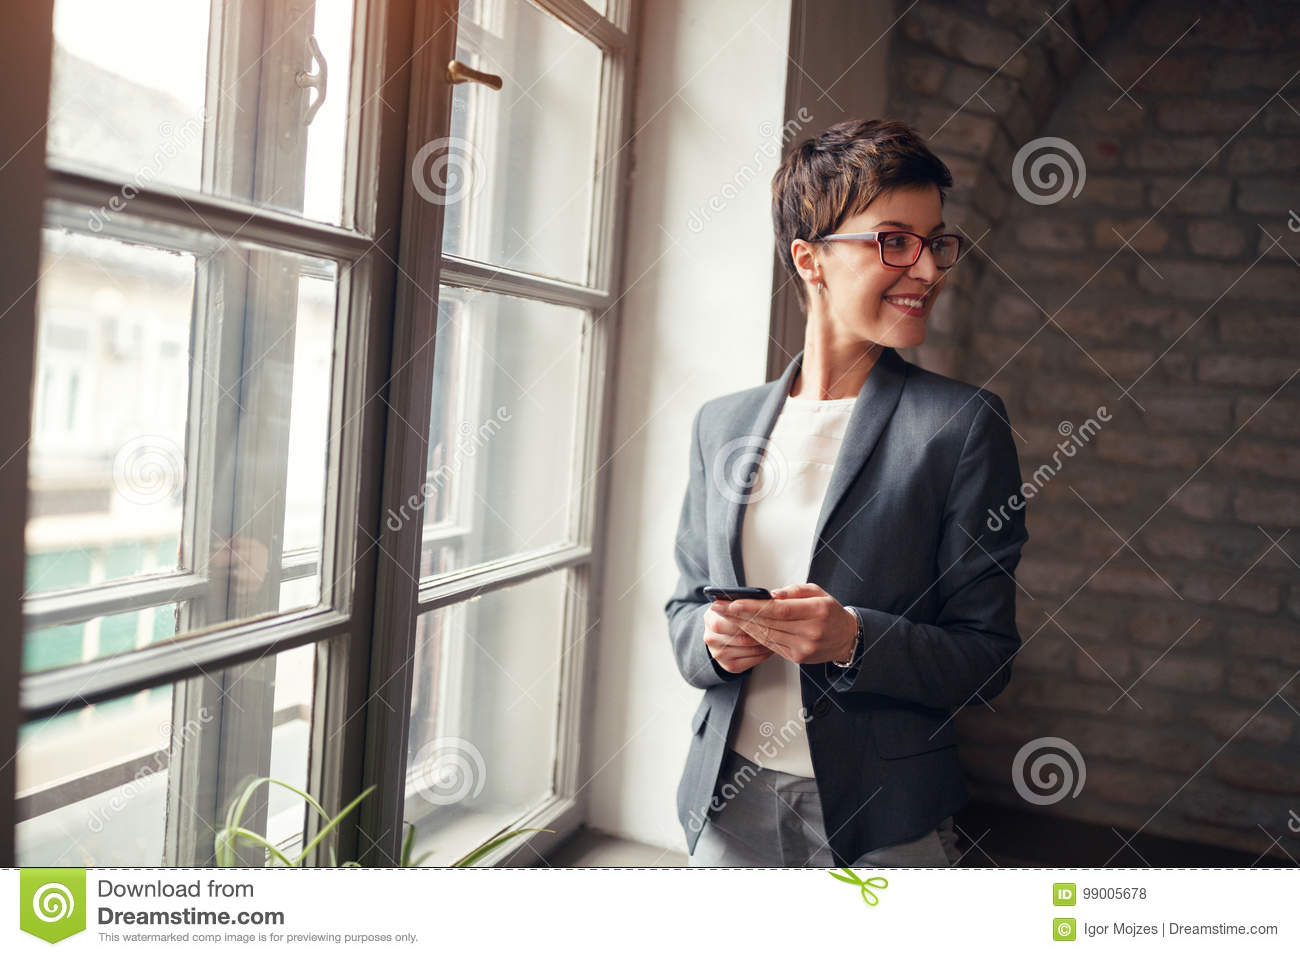 Download Casual Business-leader Woman Stock Photo - Image of businesswoman, architect: 99005678